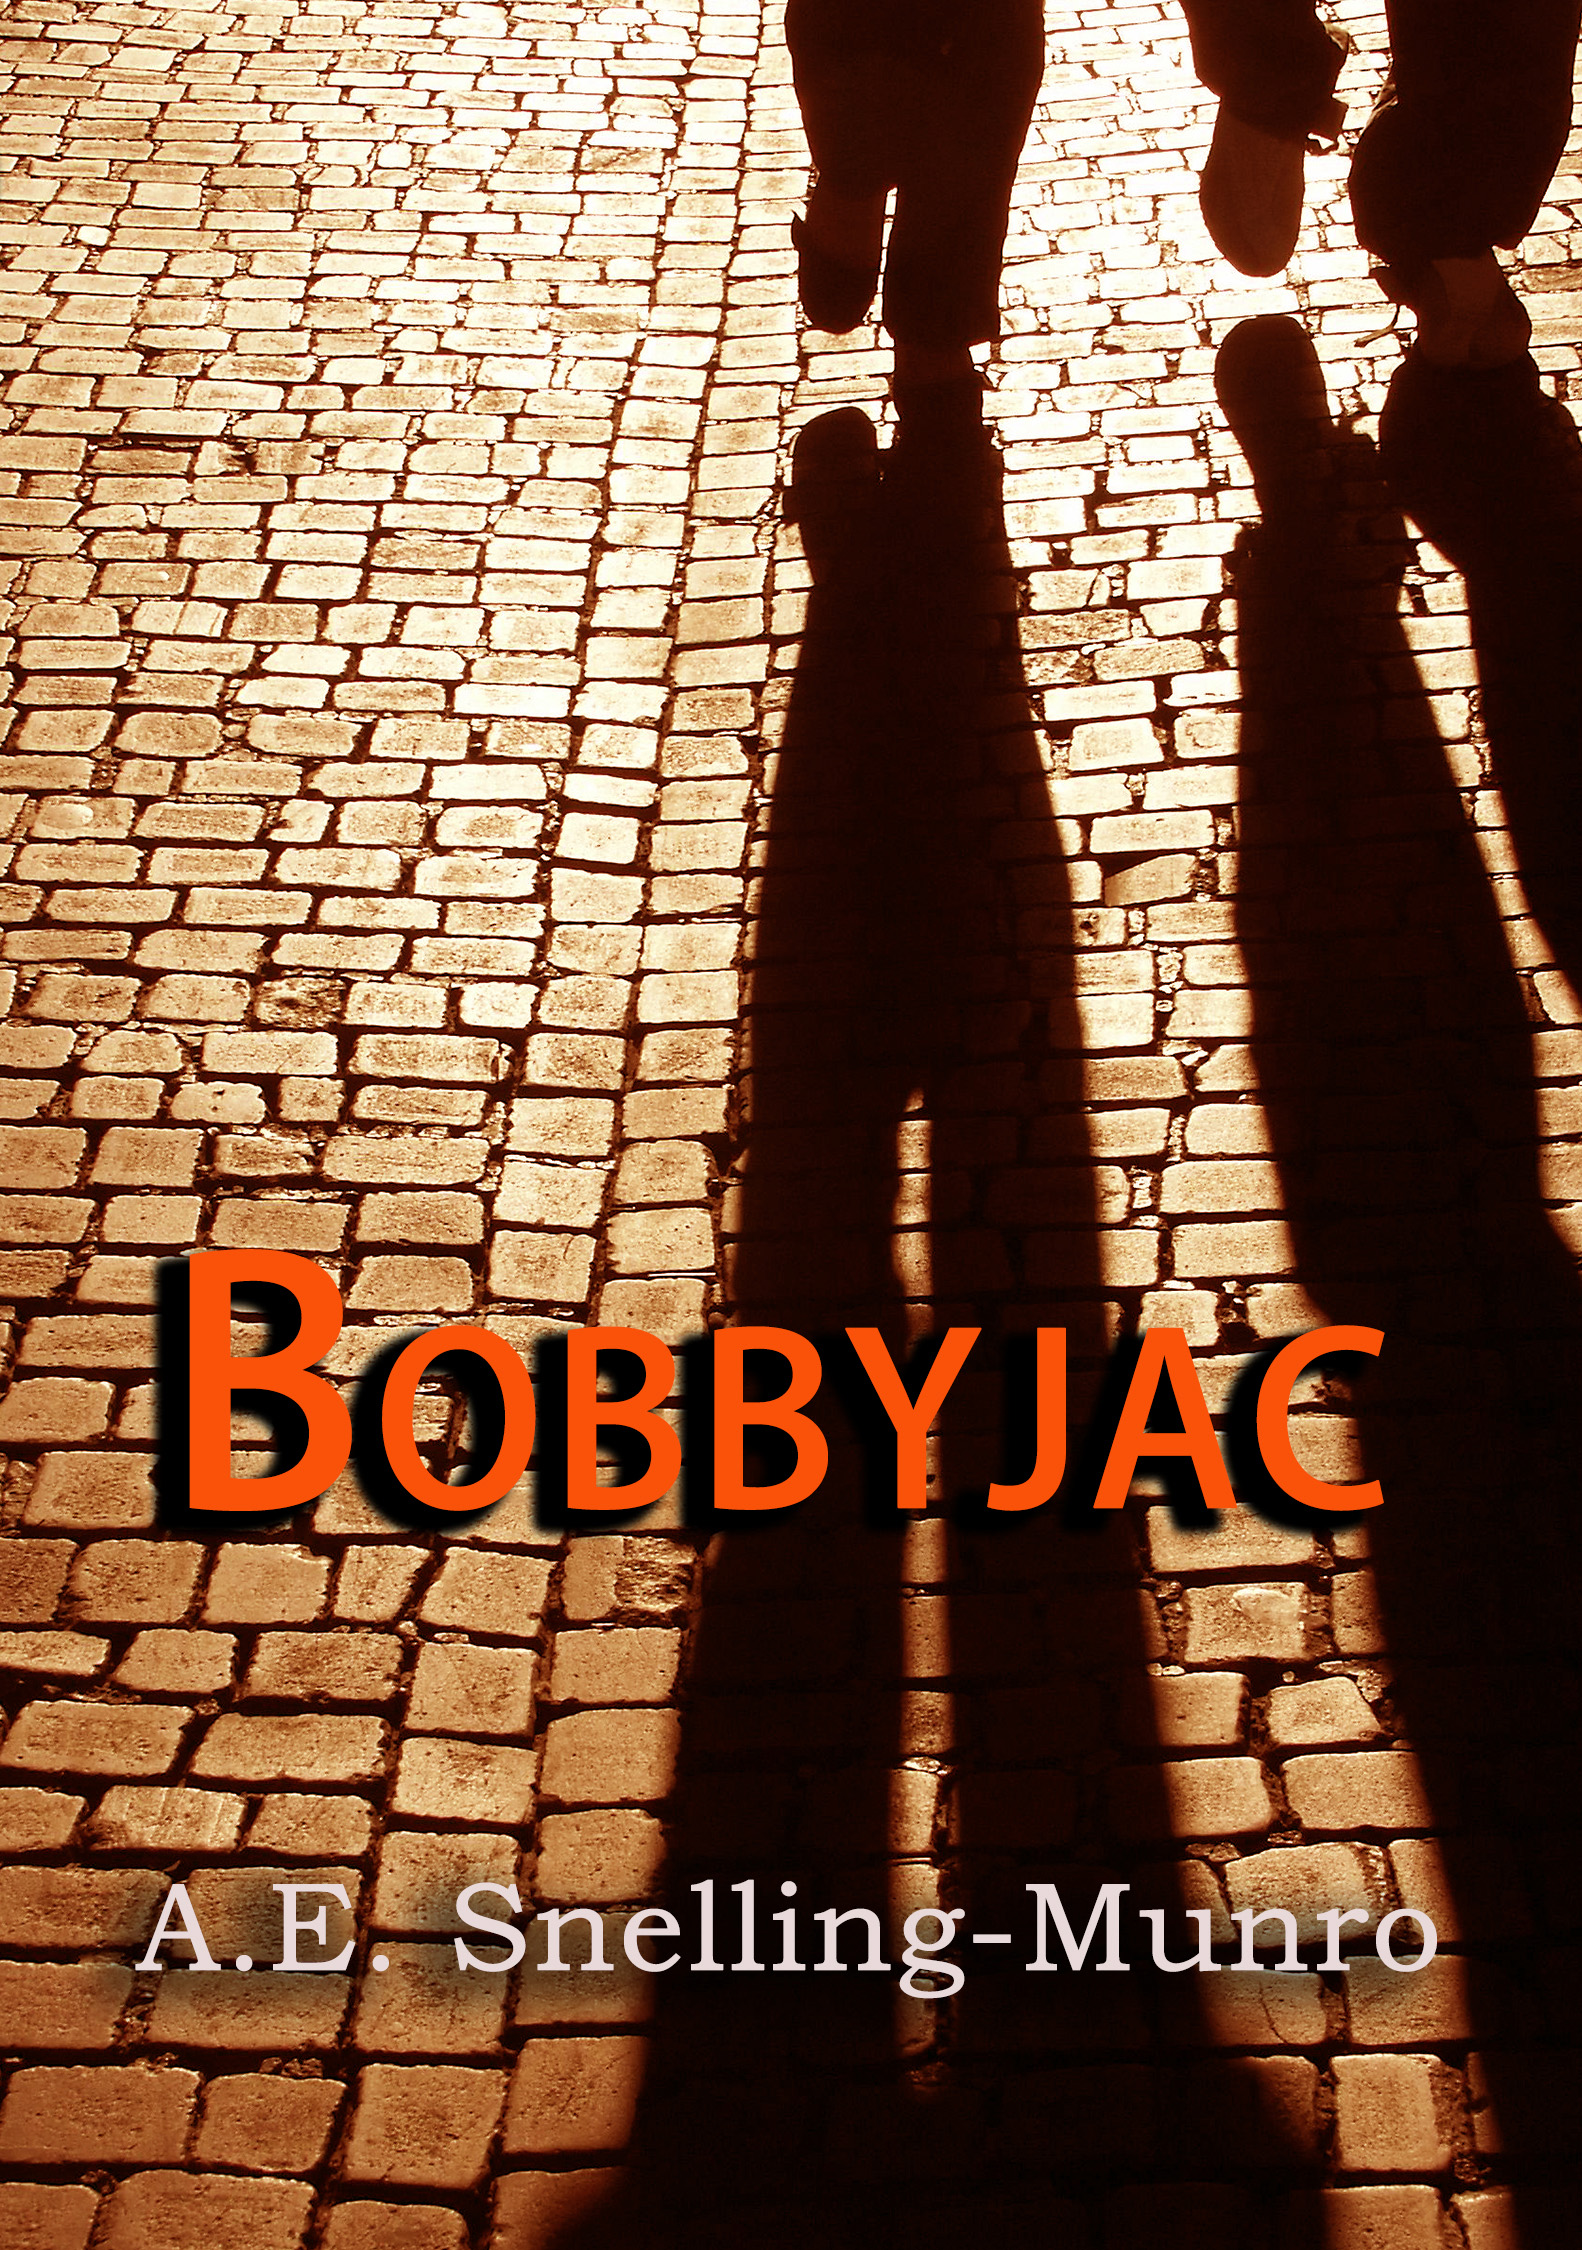 A.E. Snelling-Munro's 'Bobbyjac' is a fast-paced, amusing cops and robbers thriller that kept me gripped to the very last page ~ Amazon Reviewer~ Click here to find out more!